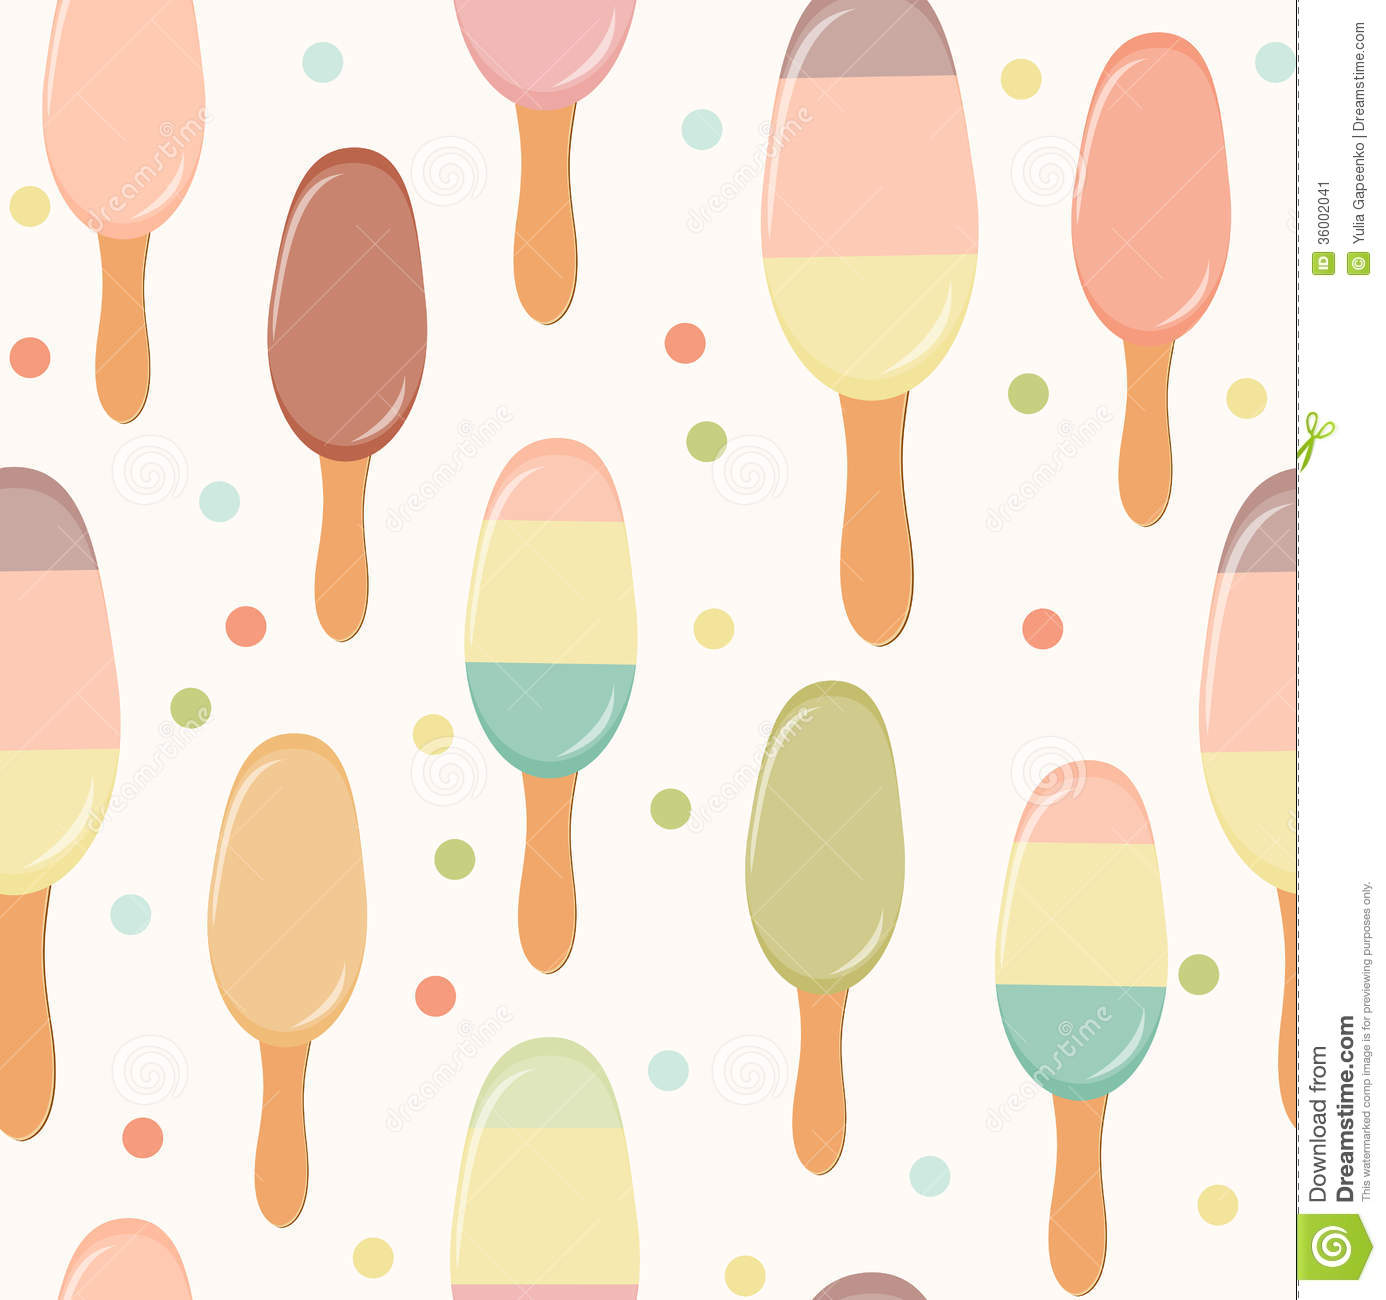 Seamless Ice Cream Wallpaper Royalty Free Stock Images: Retro Ice Cream Seamless Pattern Background. Stock Vector